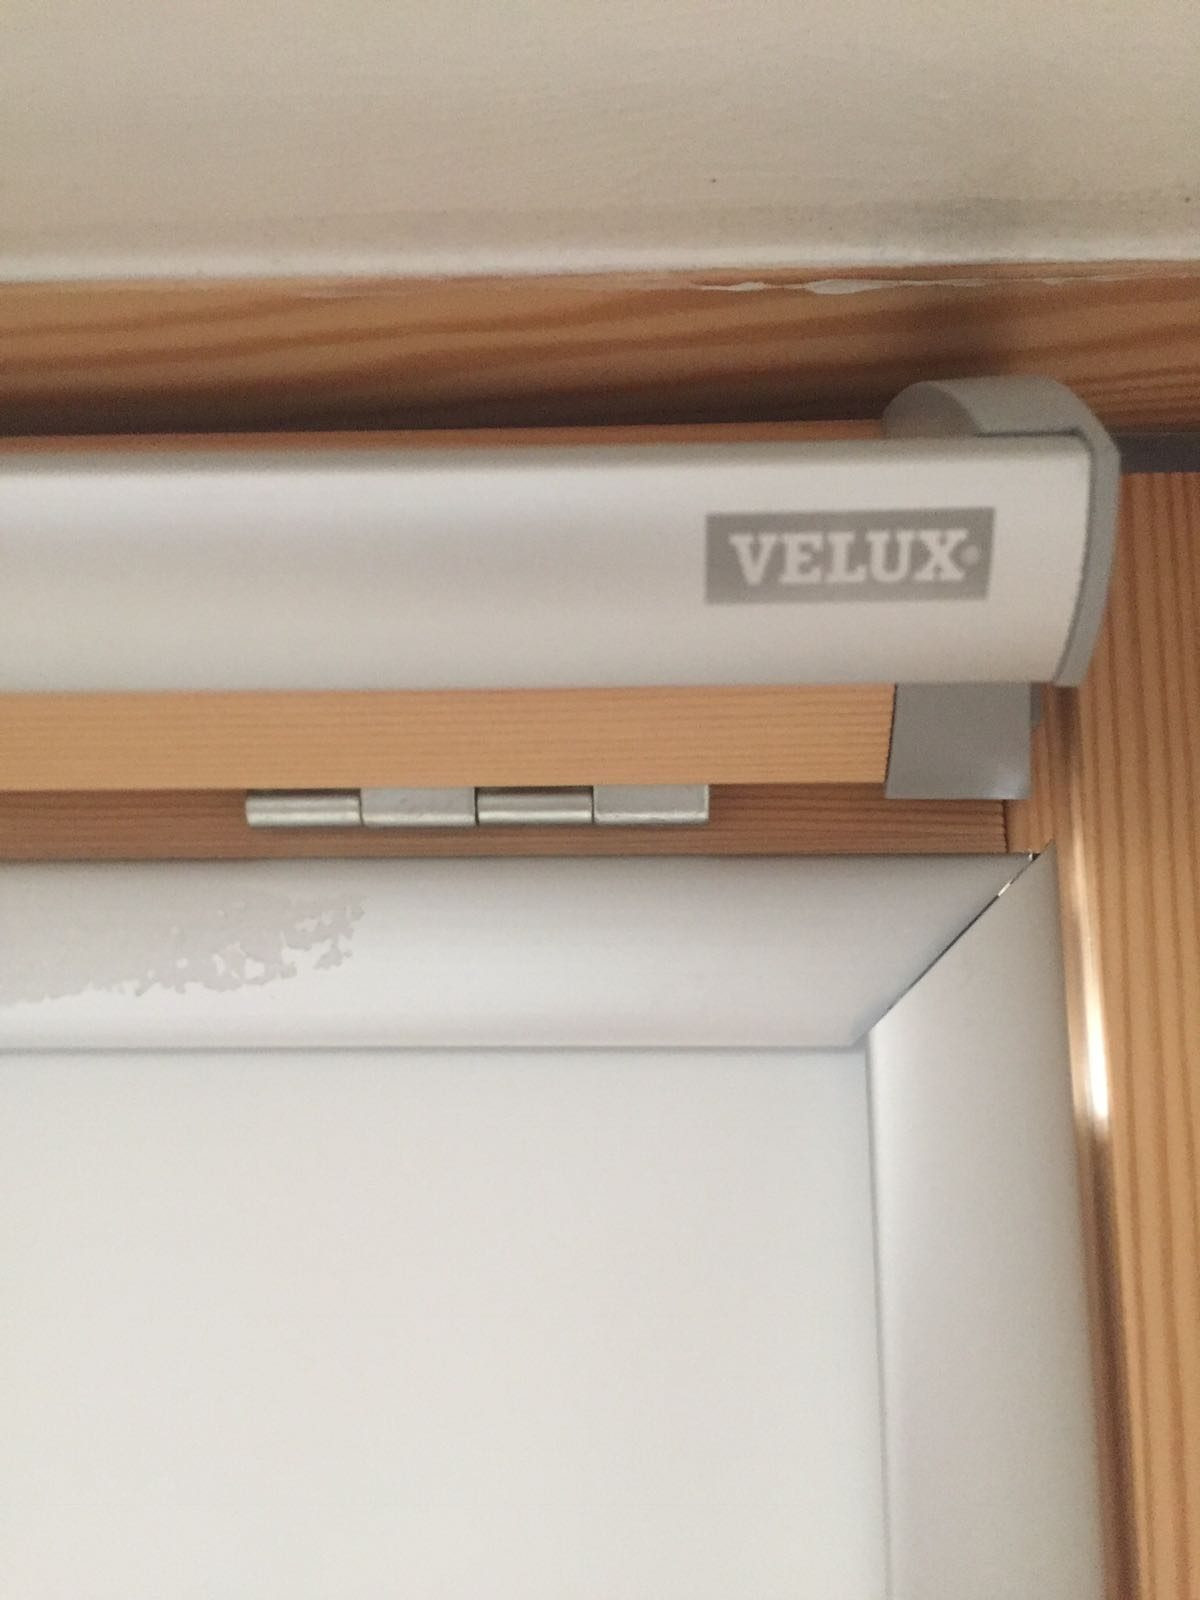 Velux fitted blind